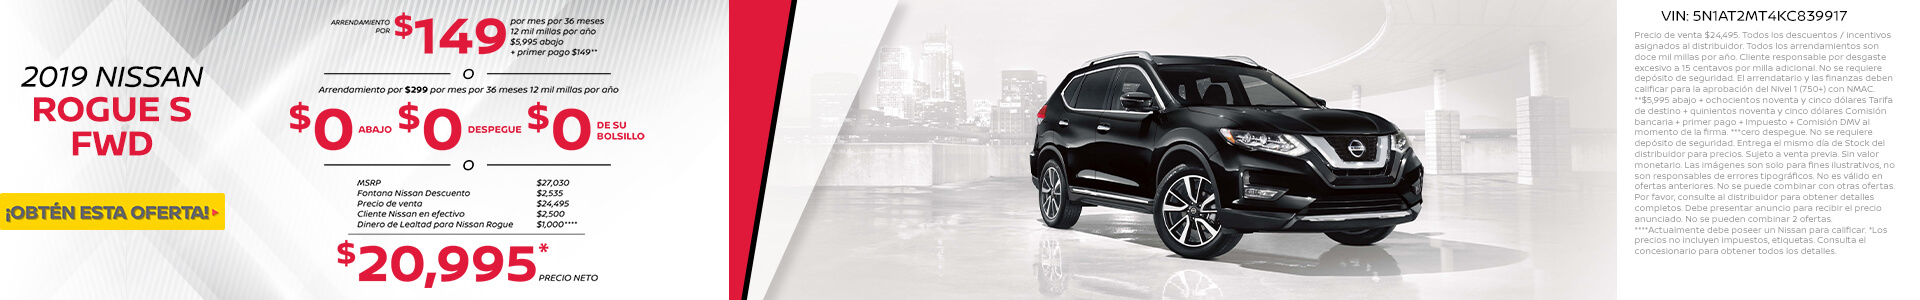 Nissan Rogue $149 Lease